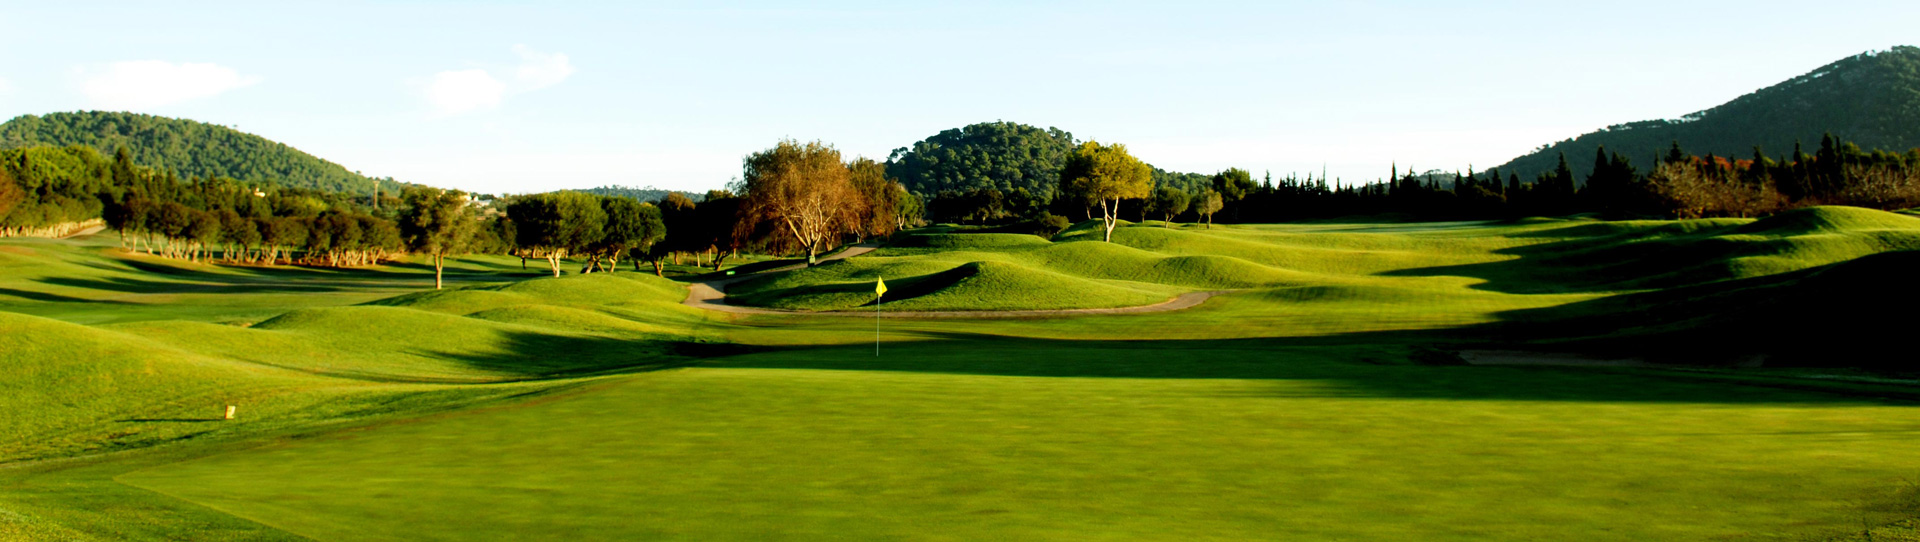 Pula Golf Course - Photo 3